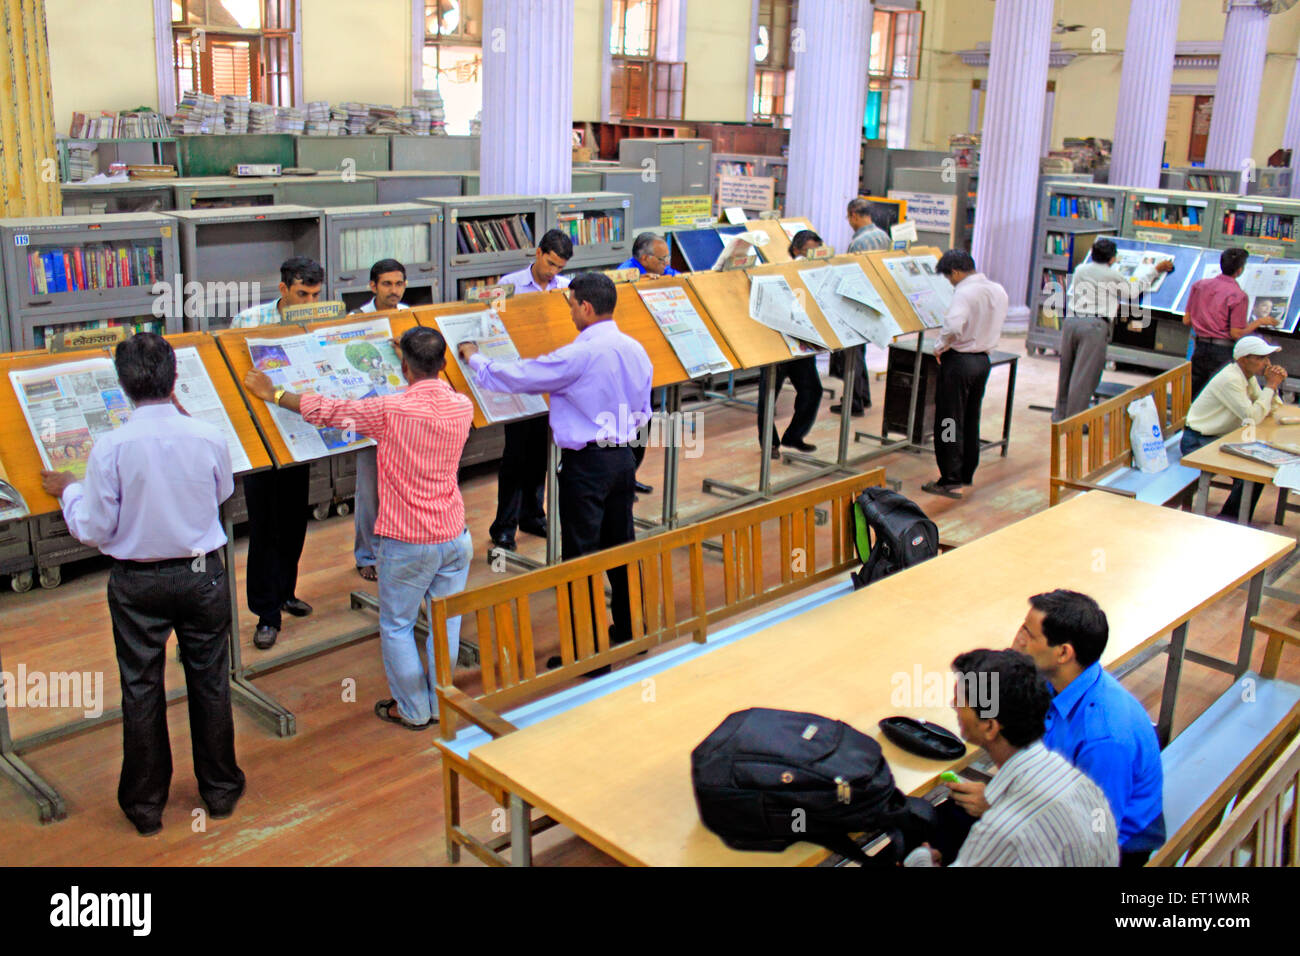 Asiatic Library at Mumbai Maharashtra India Asia - Stock Image